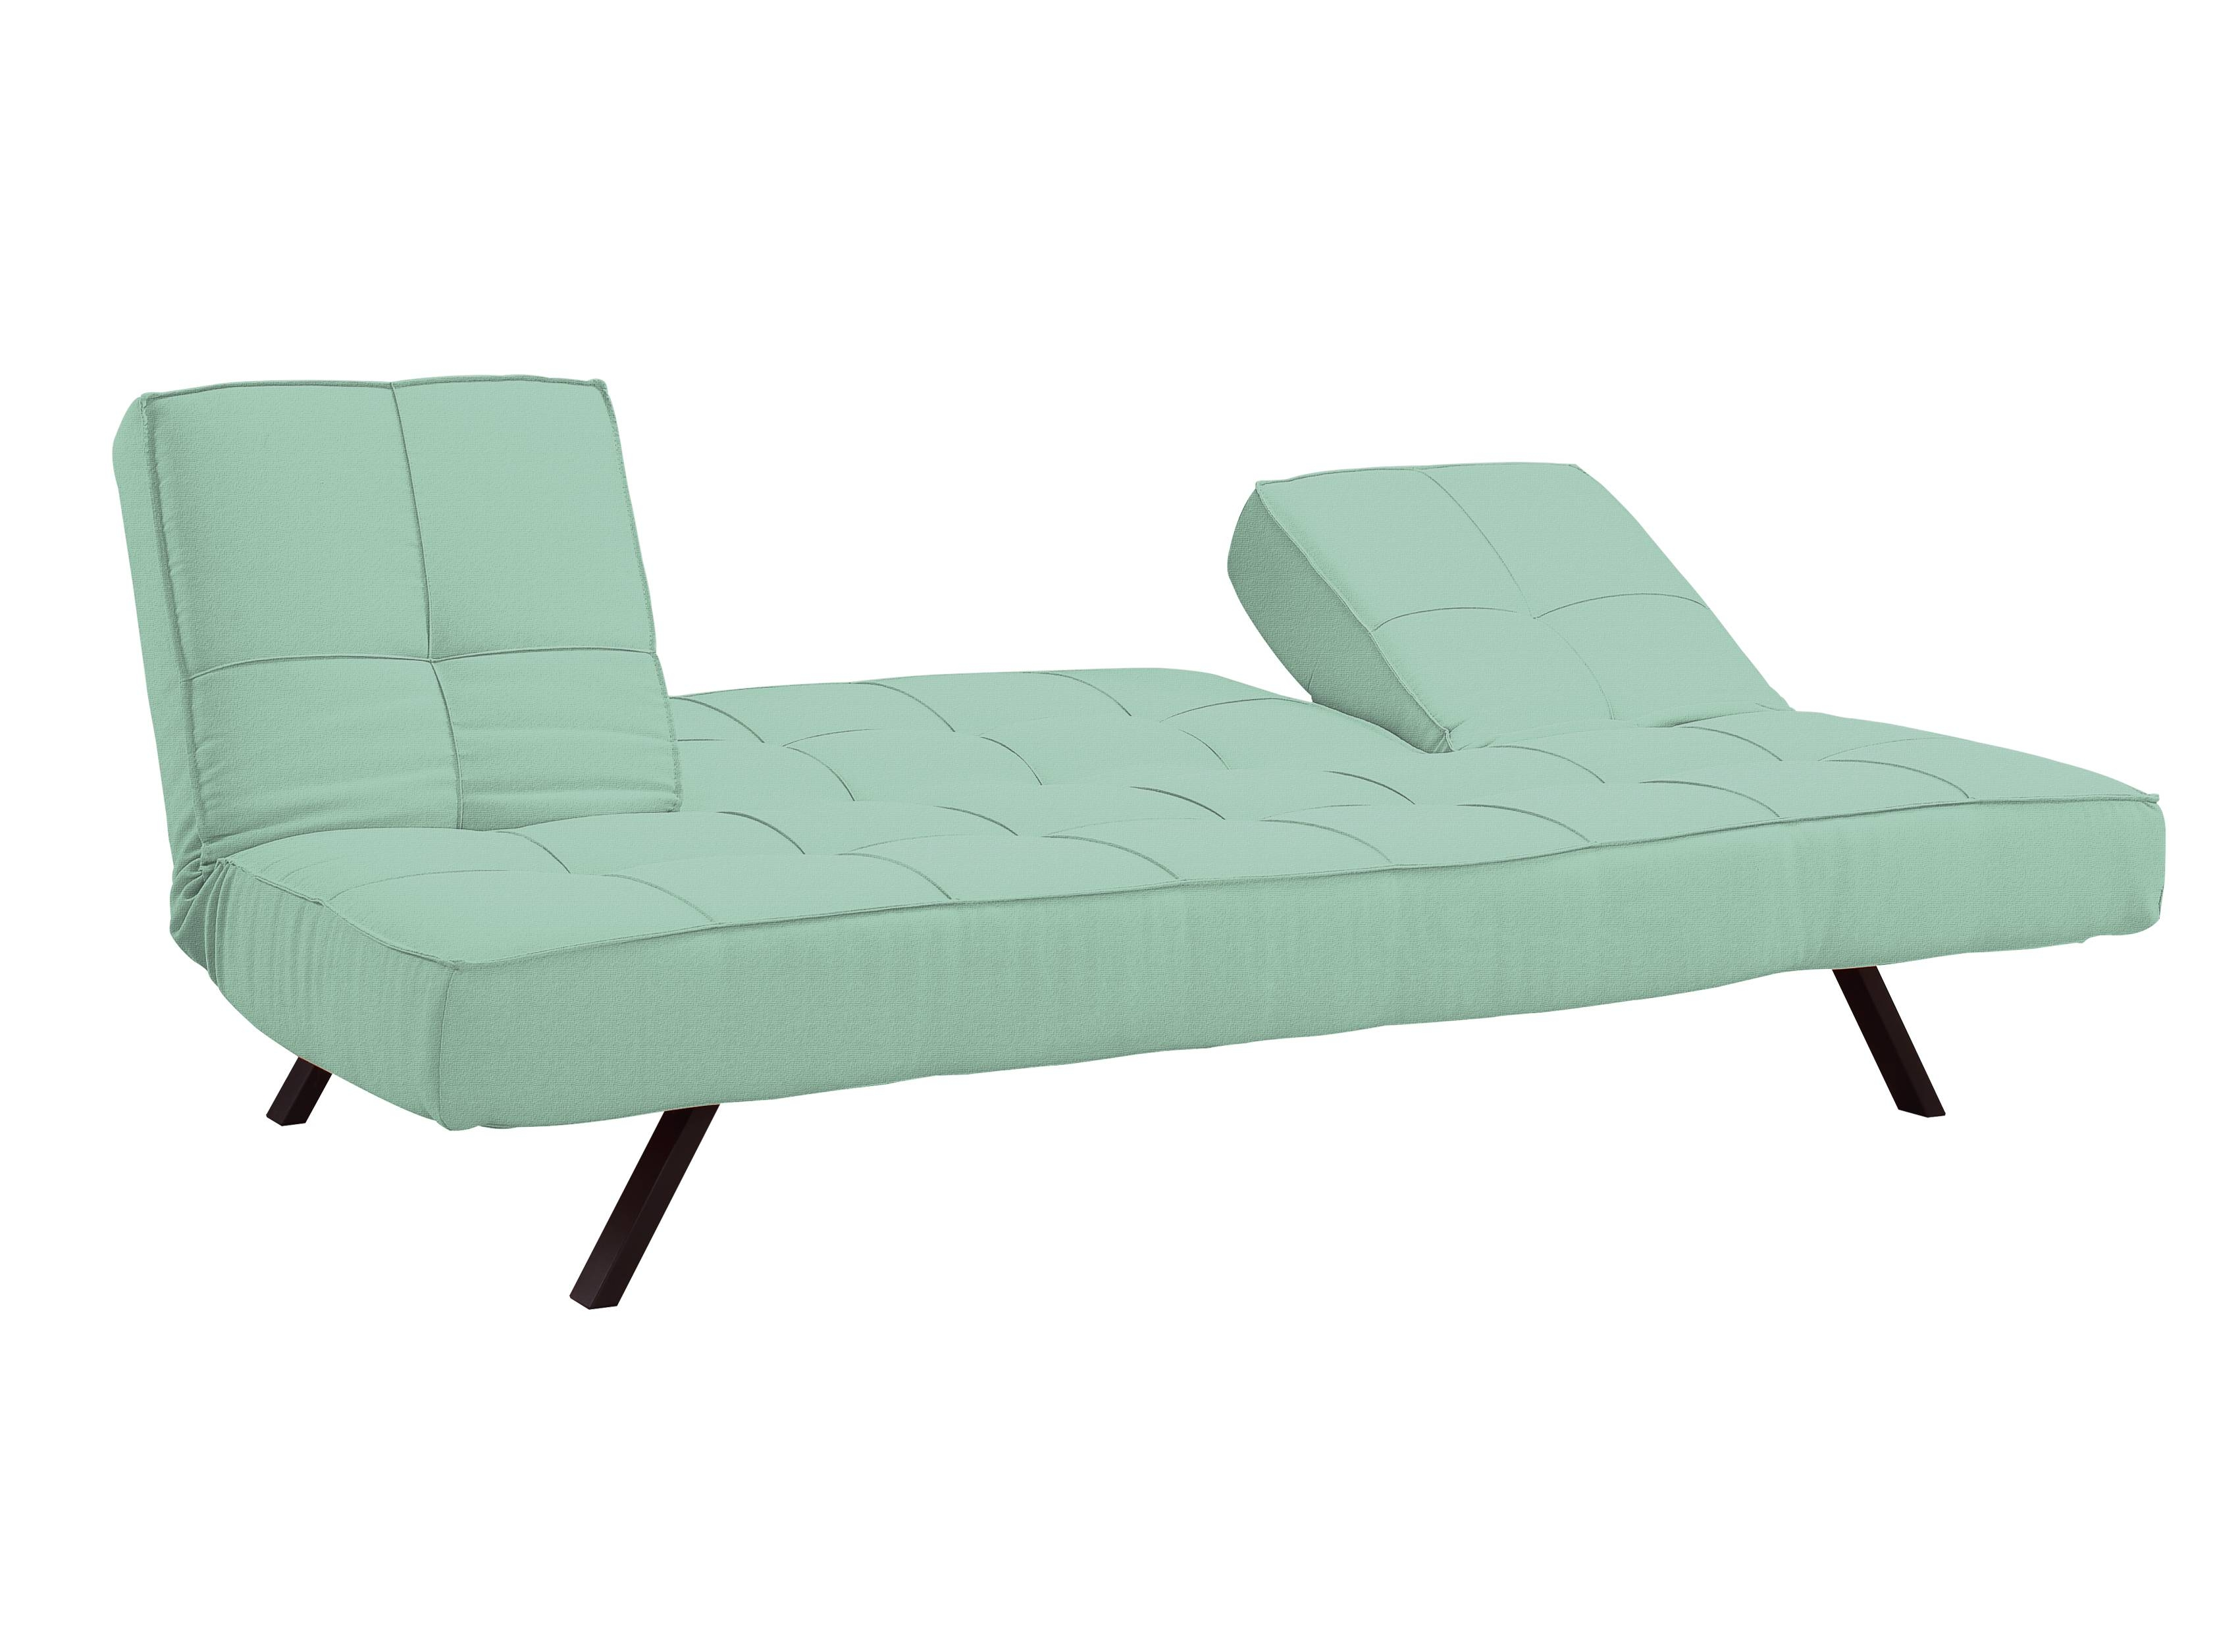 Copa Convertible Sofa Sea Foam Greenserta / Lifestyle pertaining to Seafoam Green Sofas (Image 5 of 15)